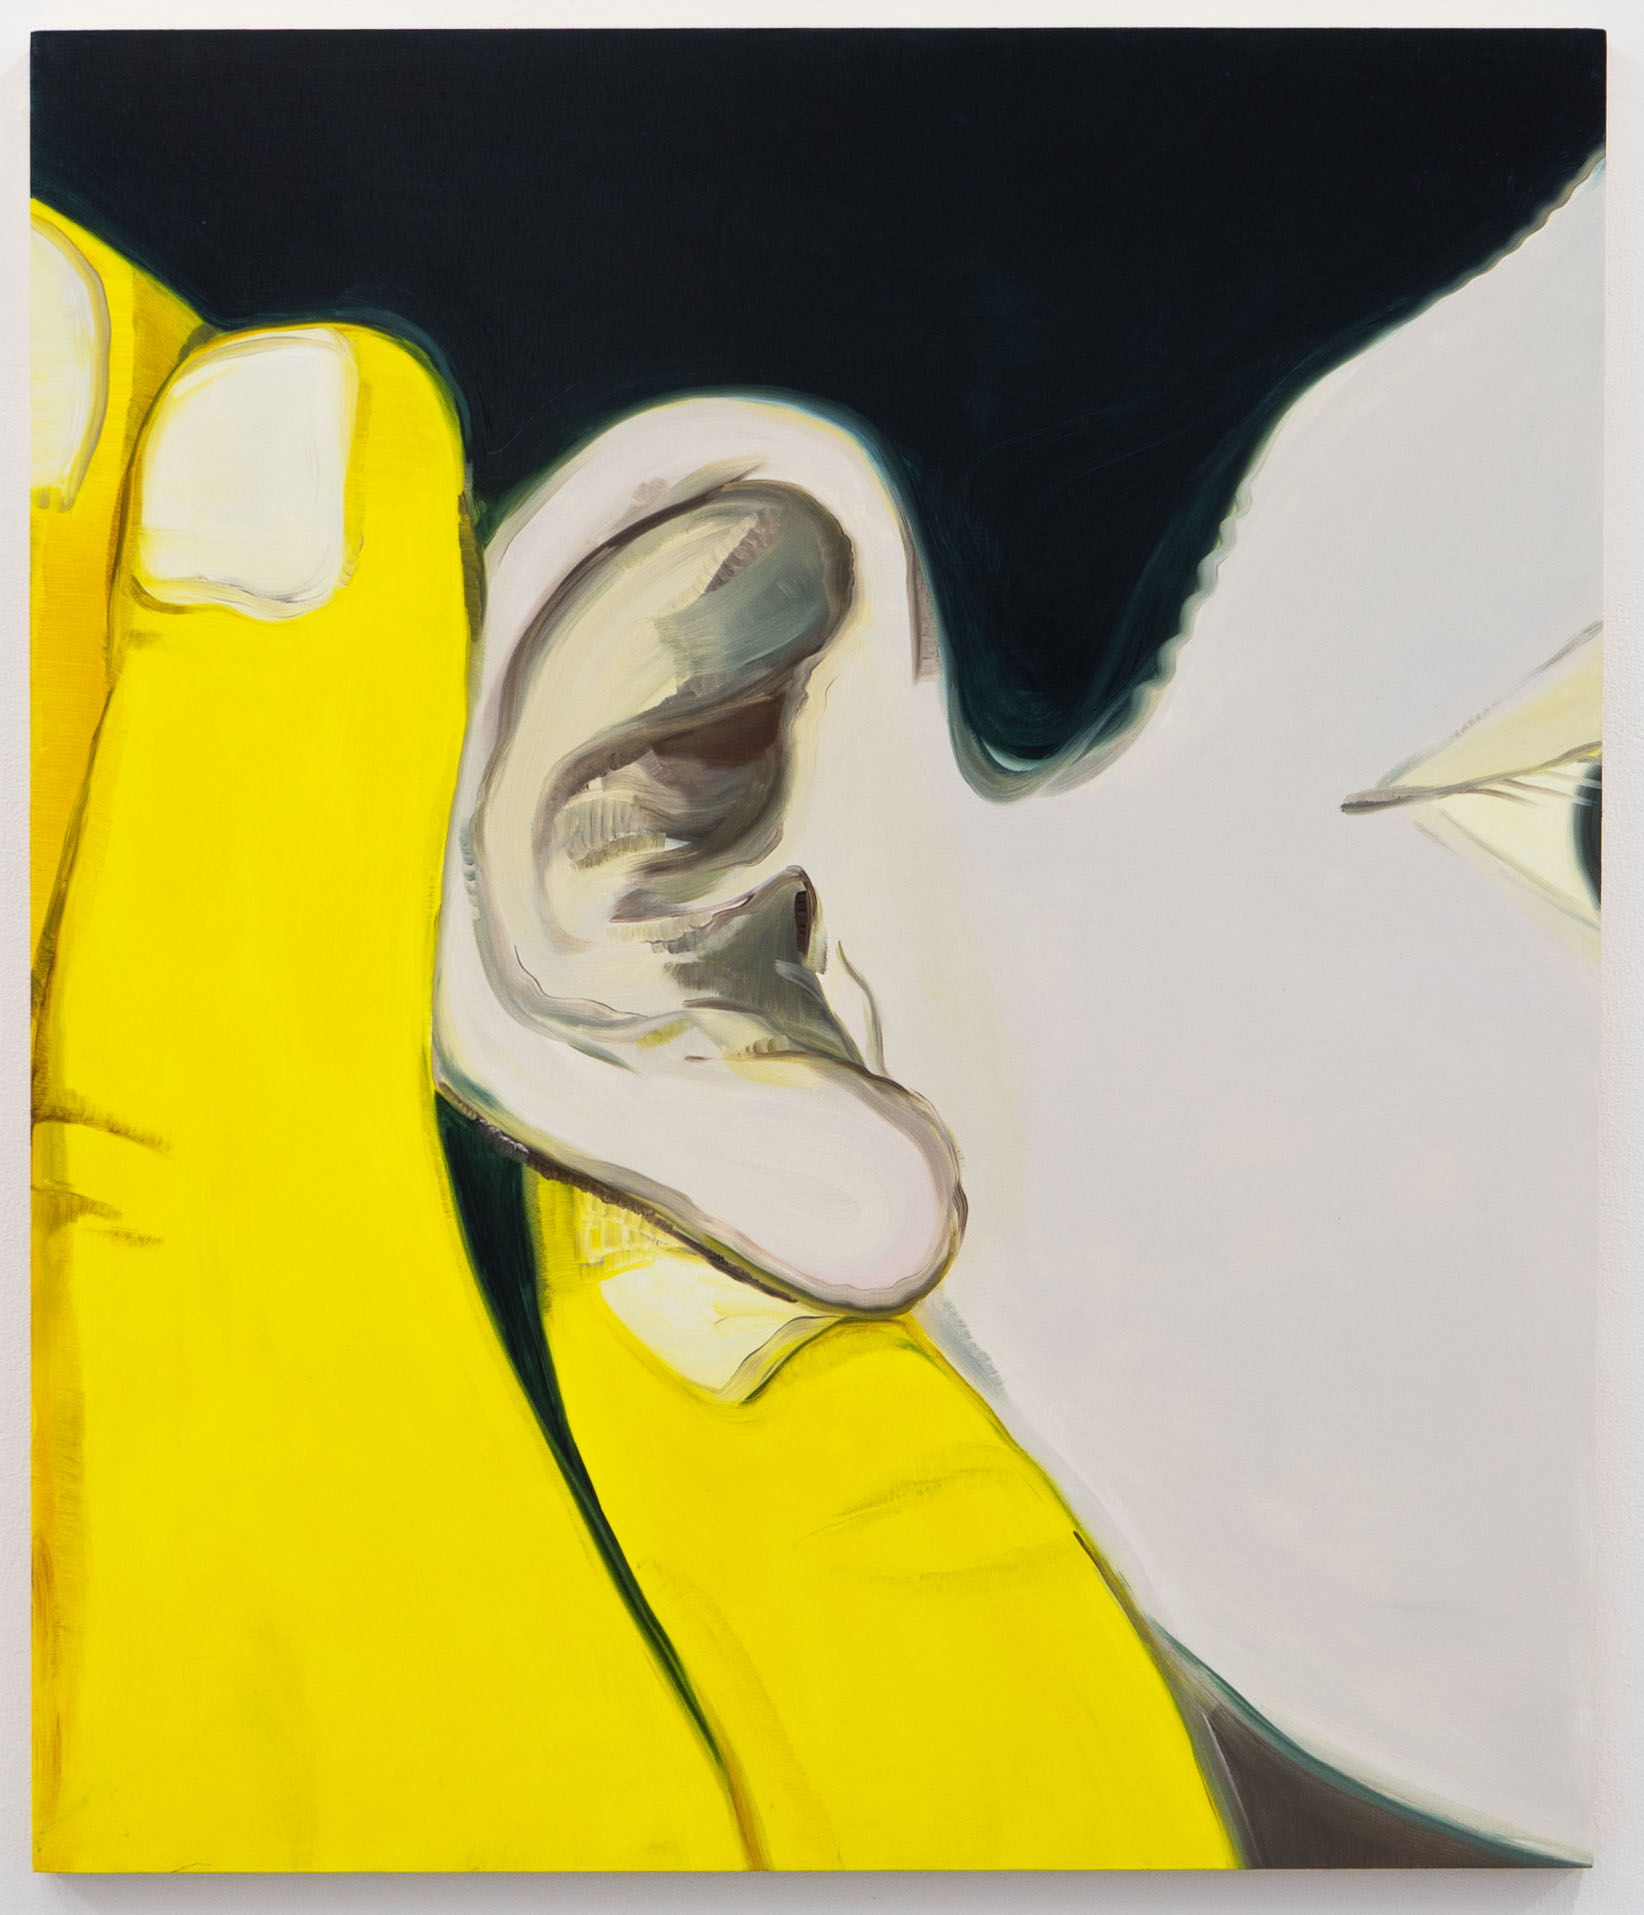 Anahiras Ear, 60x70cm, oil on board, 2017